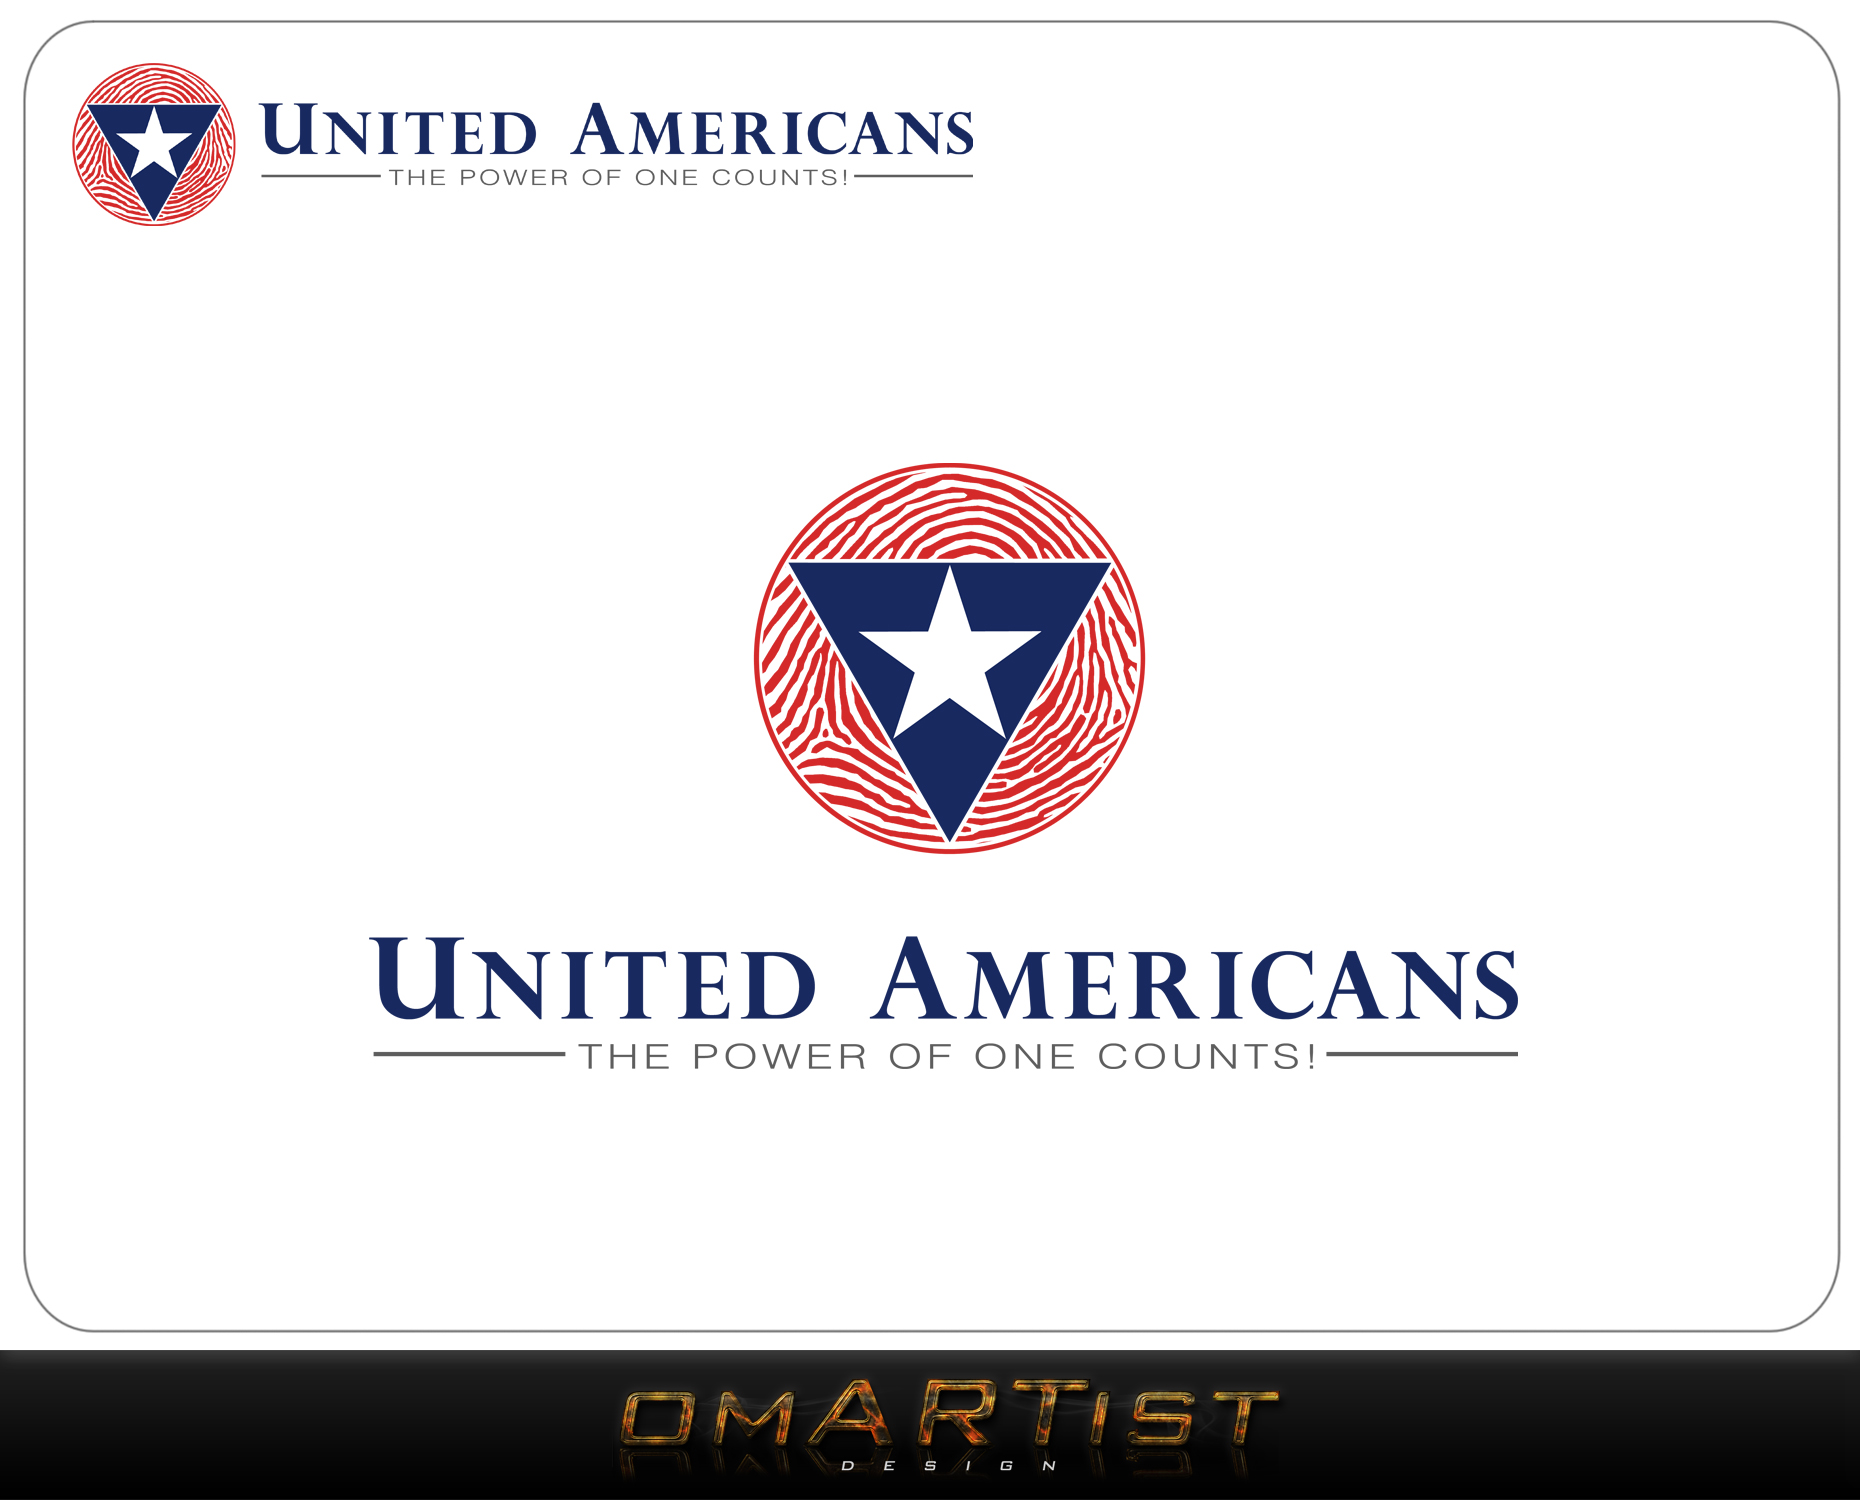 Logo Design by omARTist - Entry No. 103 in the Logo Design Contest Creative Logo Design for United Americans.